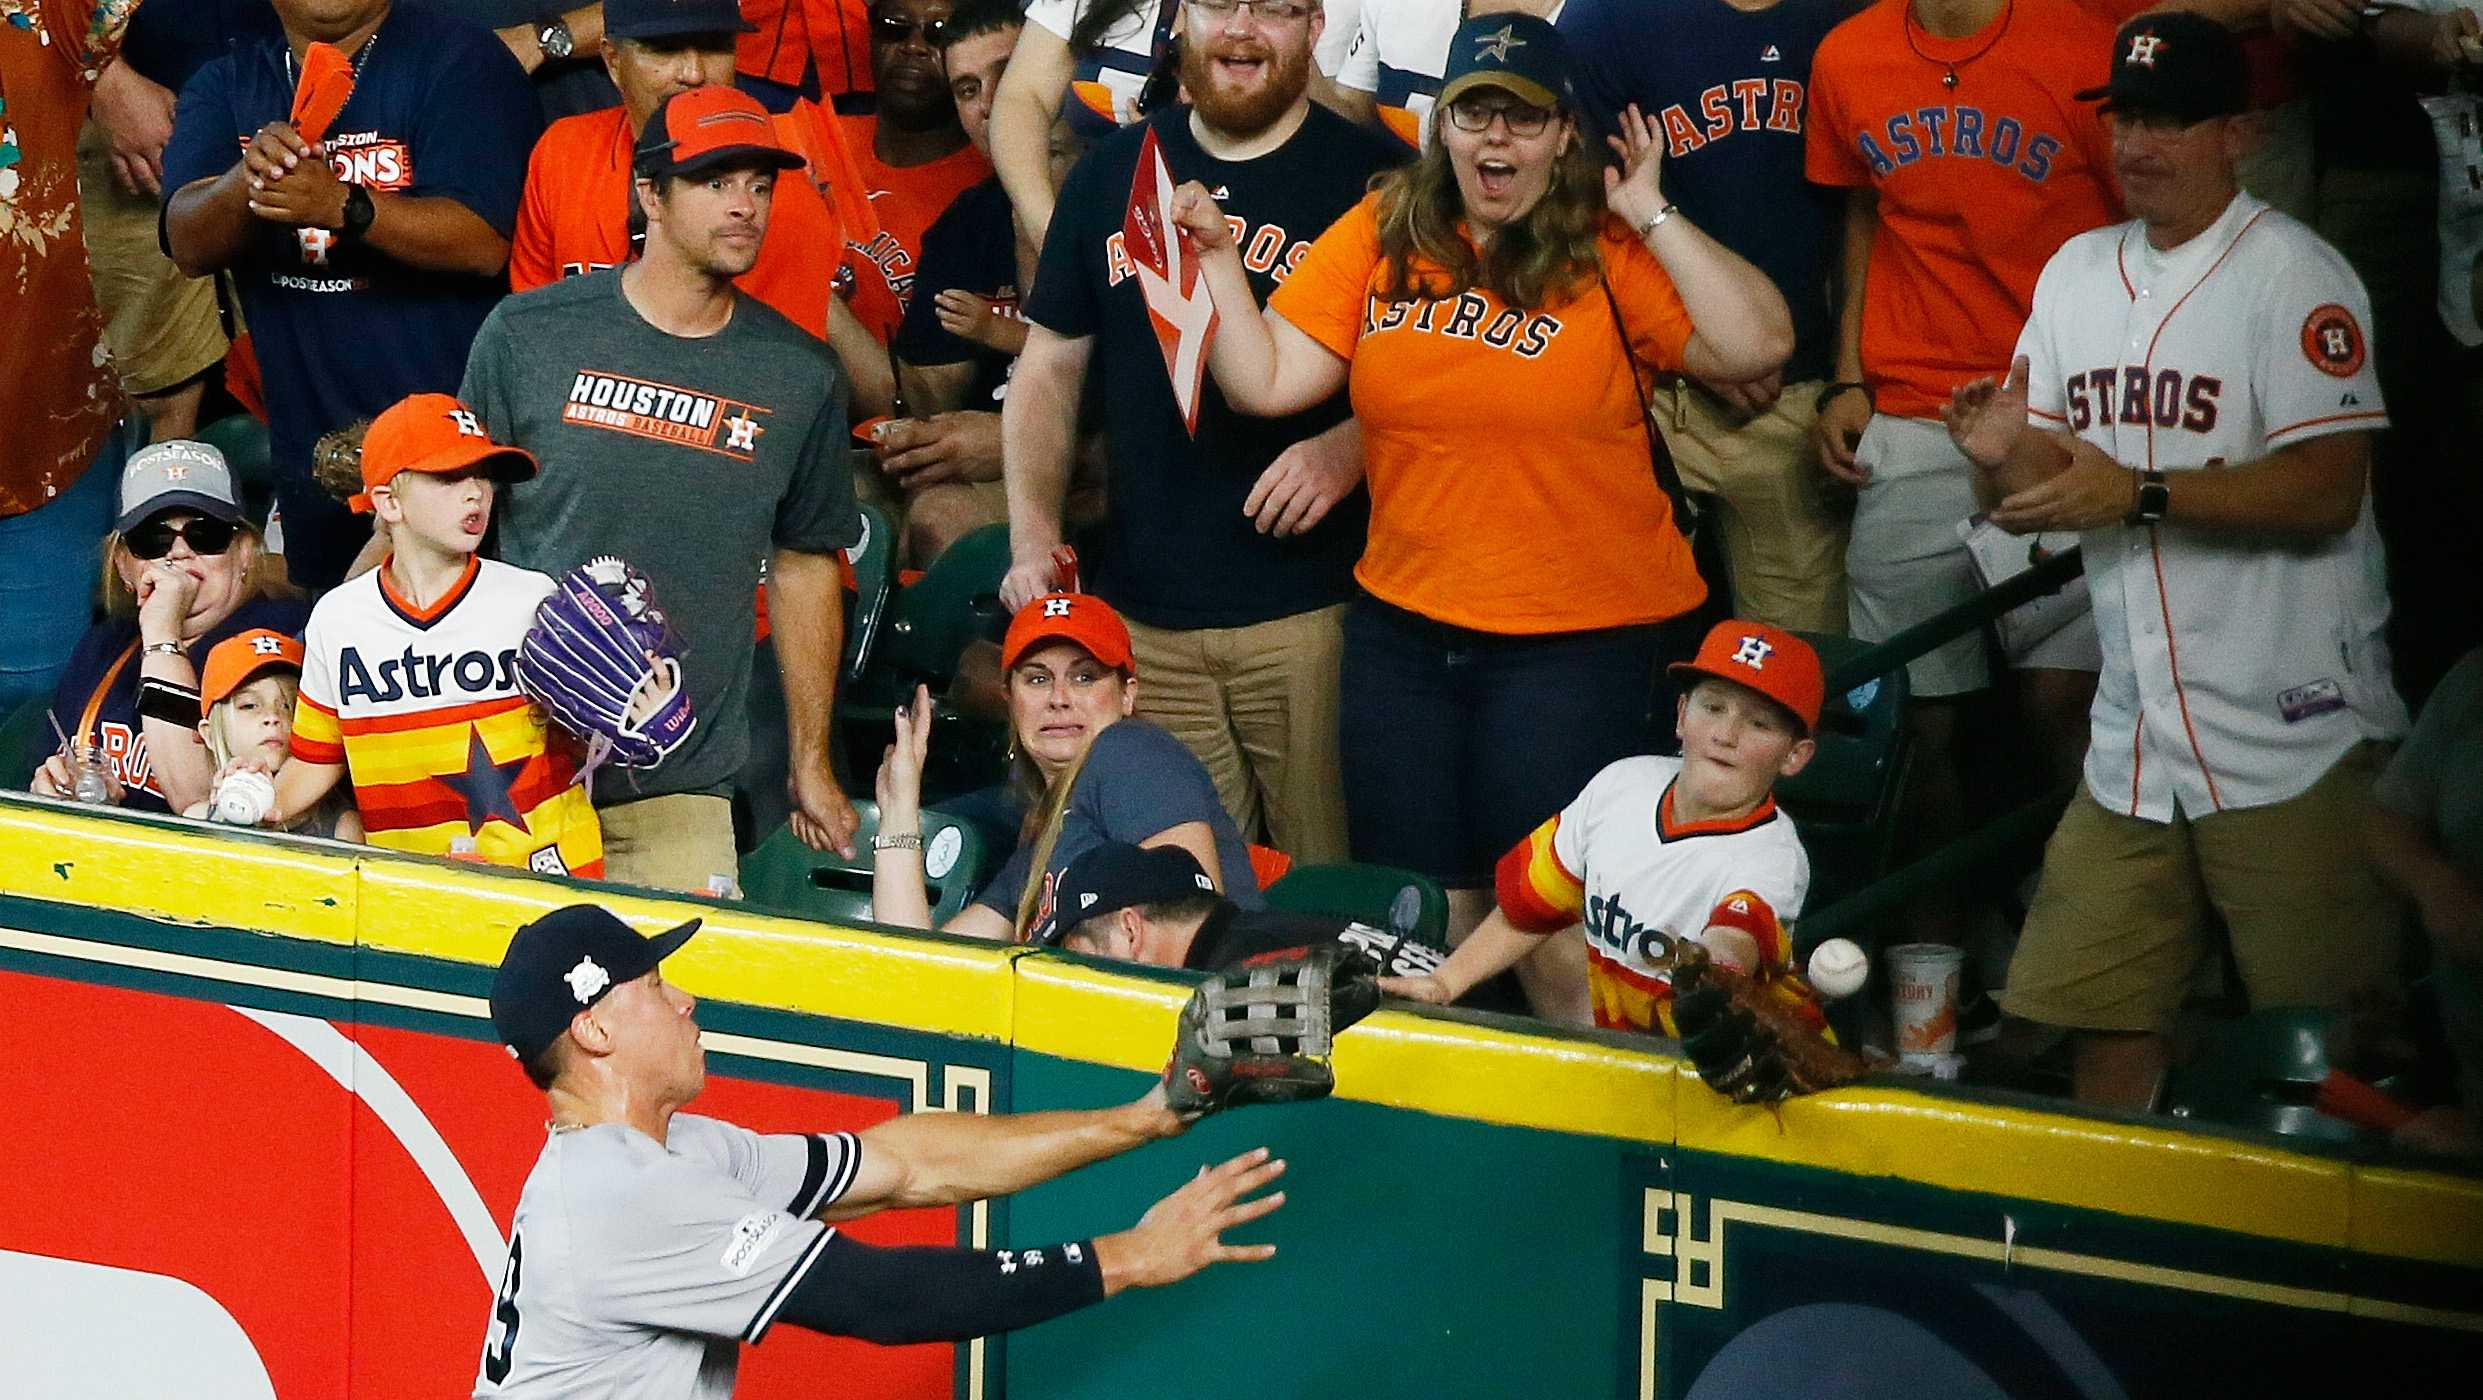 Carson Riley catches a home run hit by the Houston Astros' Carlos Correa in the fourth inning of Game 2 of the ALCS, Oct. 14, 2017.